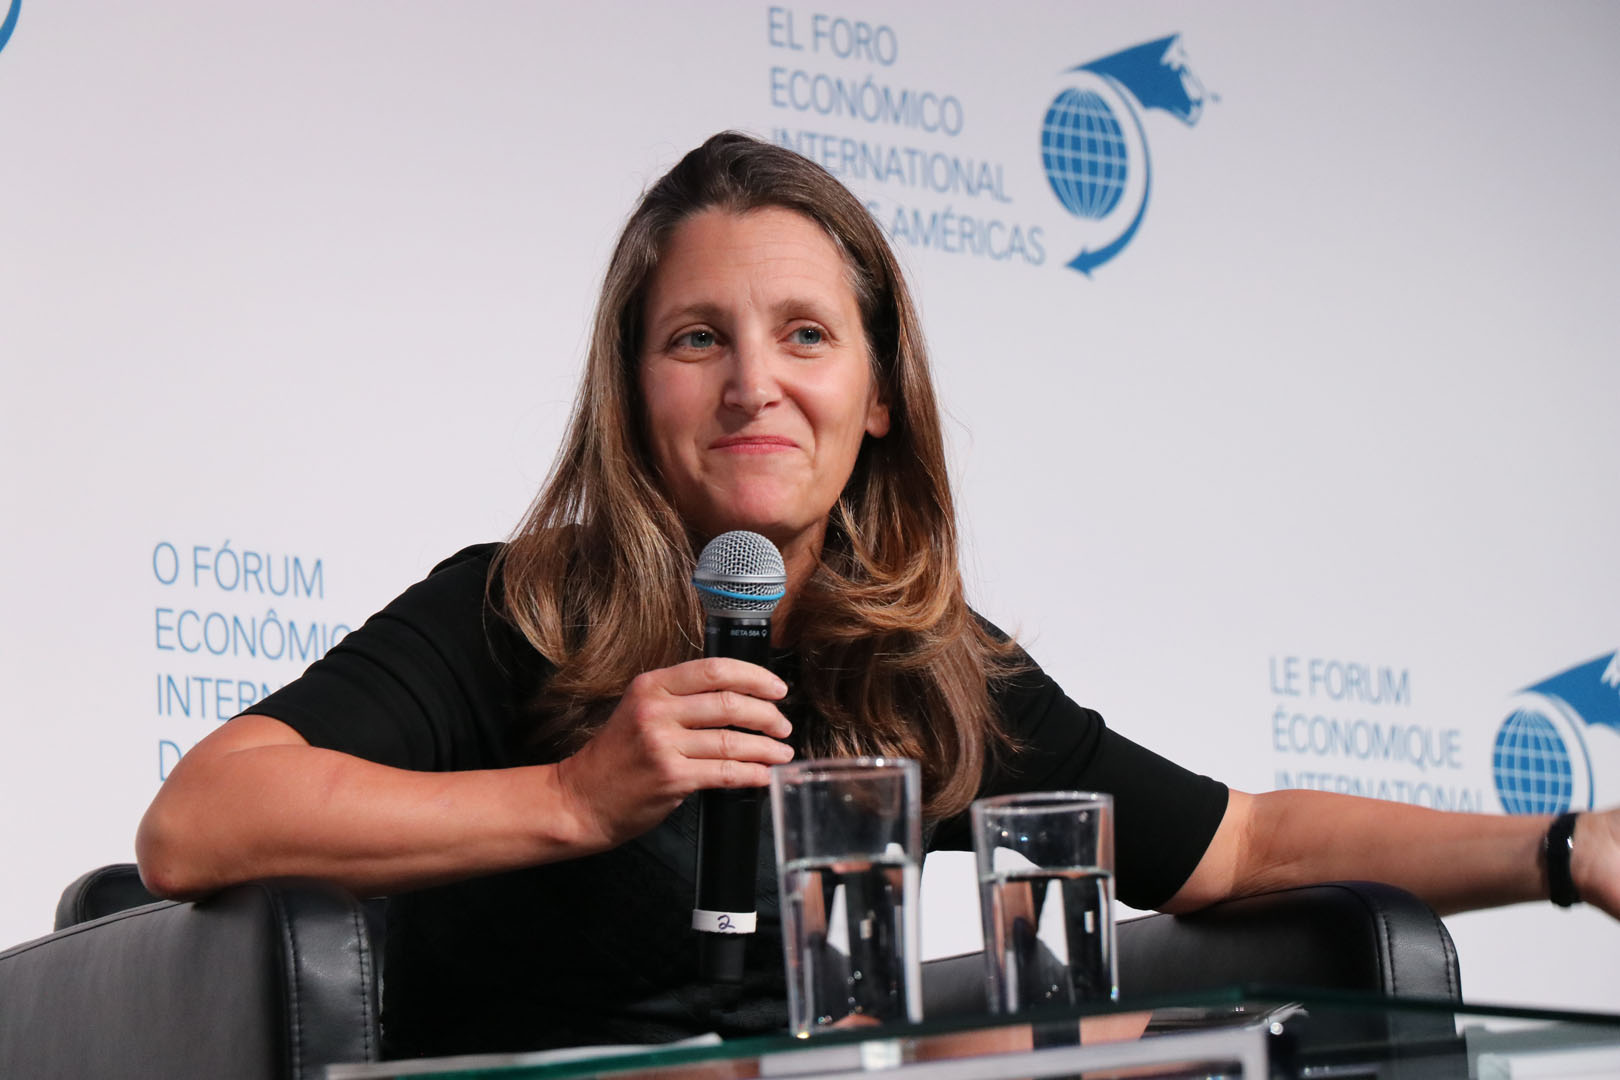 Chrystia Freeland, Minister of Foreign Affairs, Canada